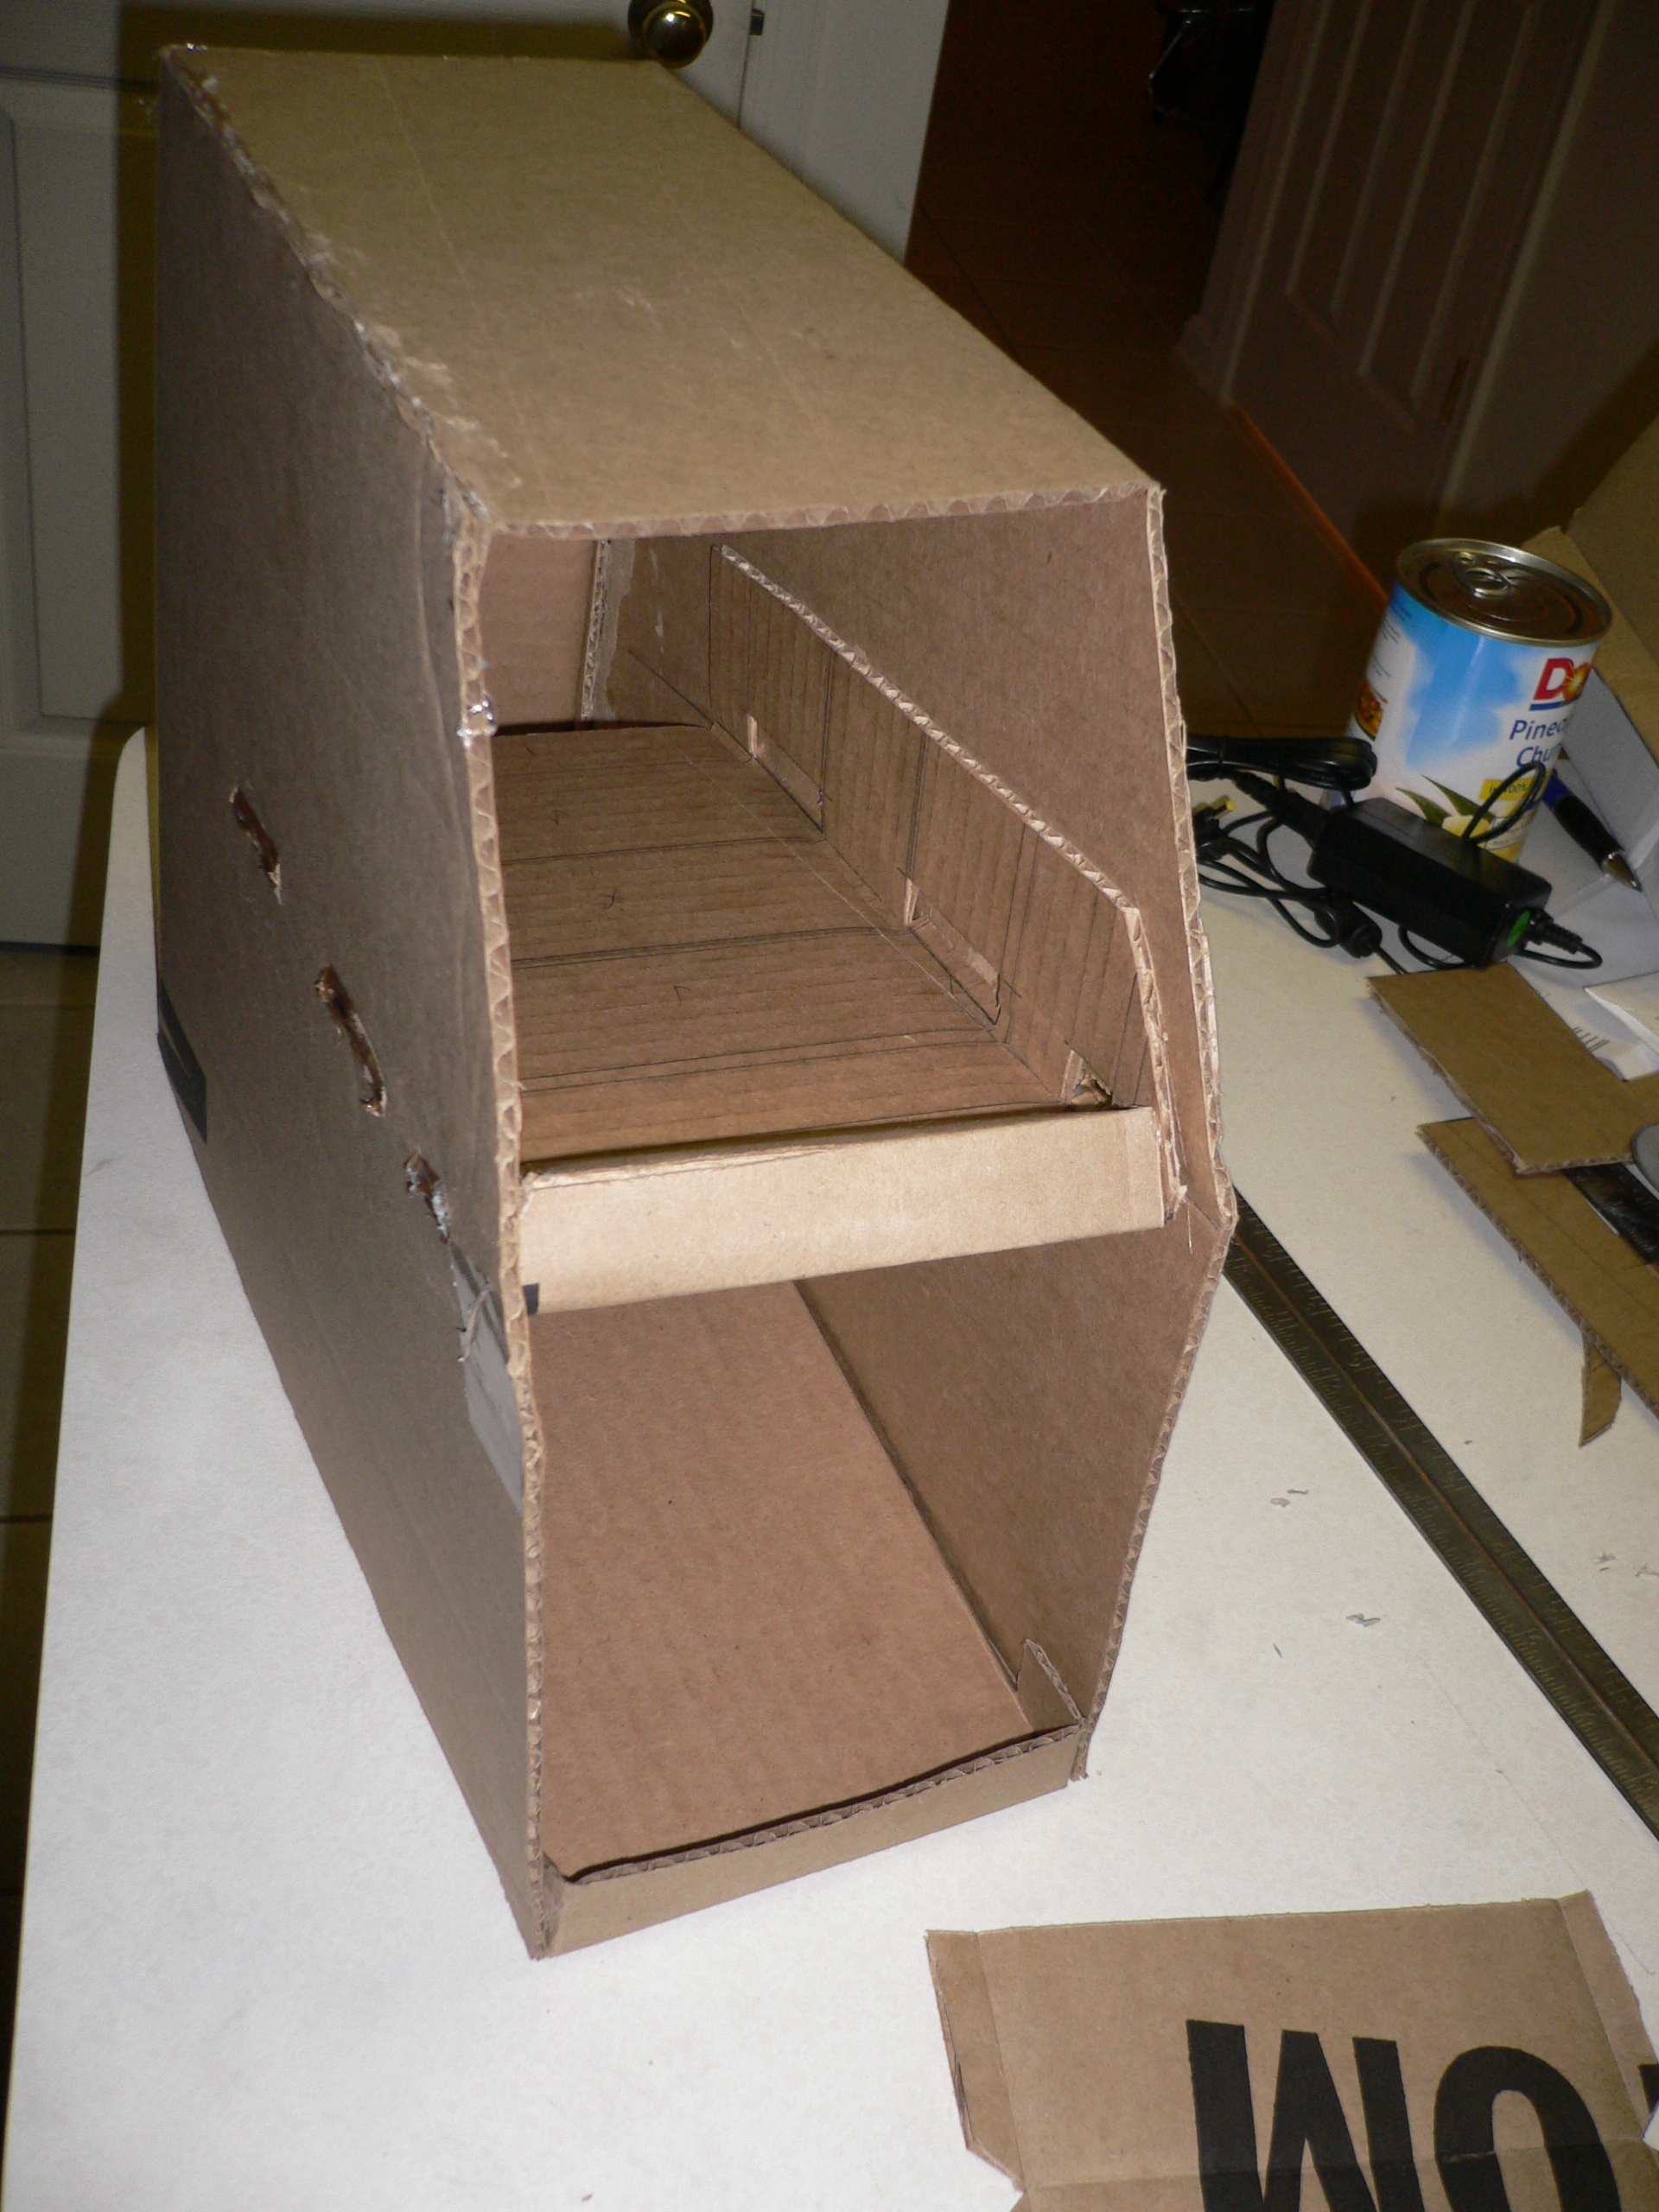 How To Make A Can Organizer Out Of Cardboard 10 Steps